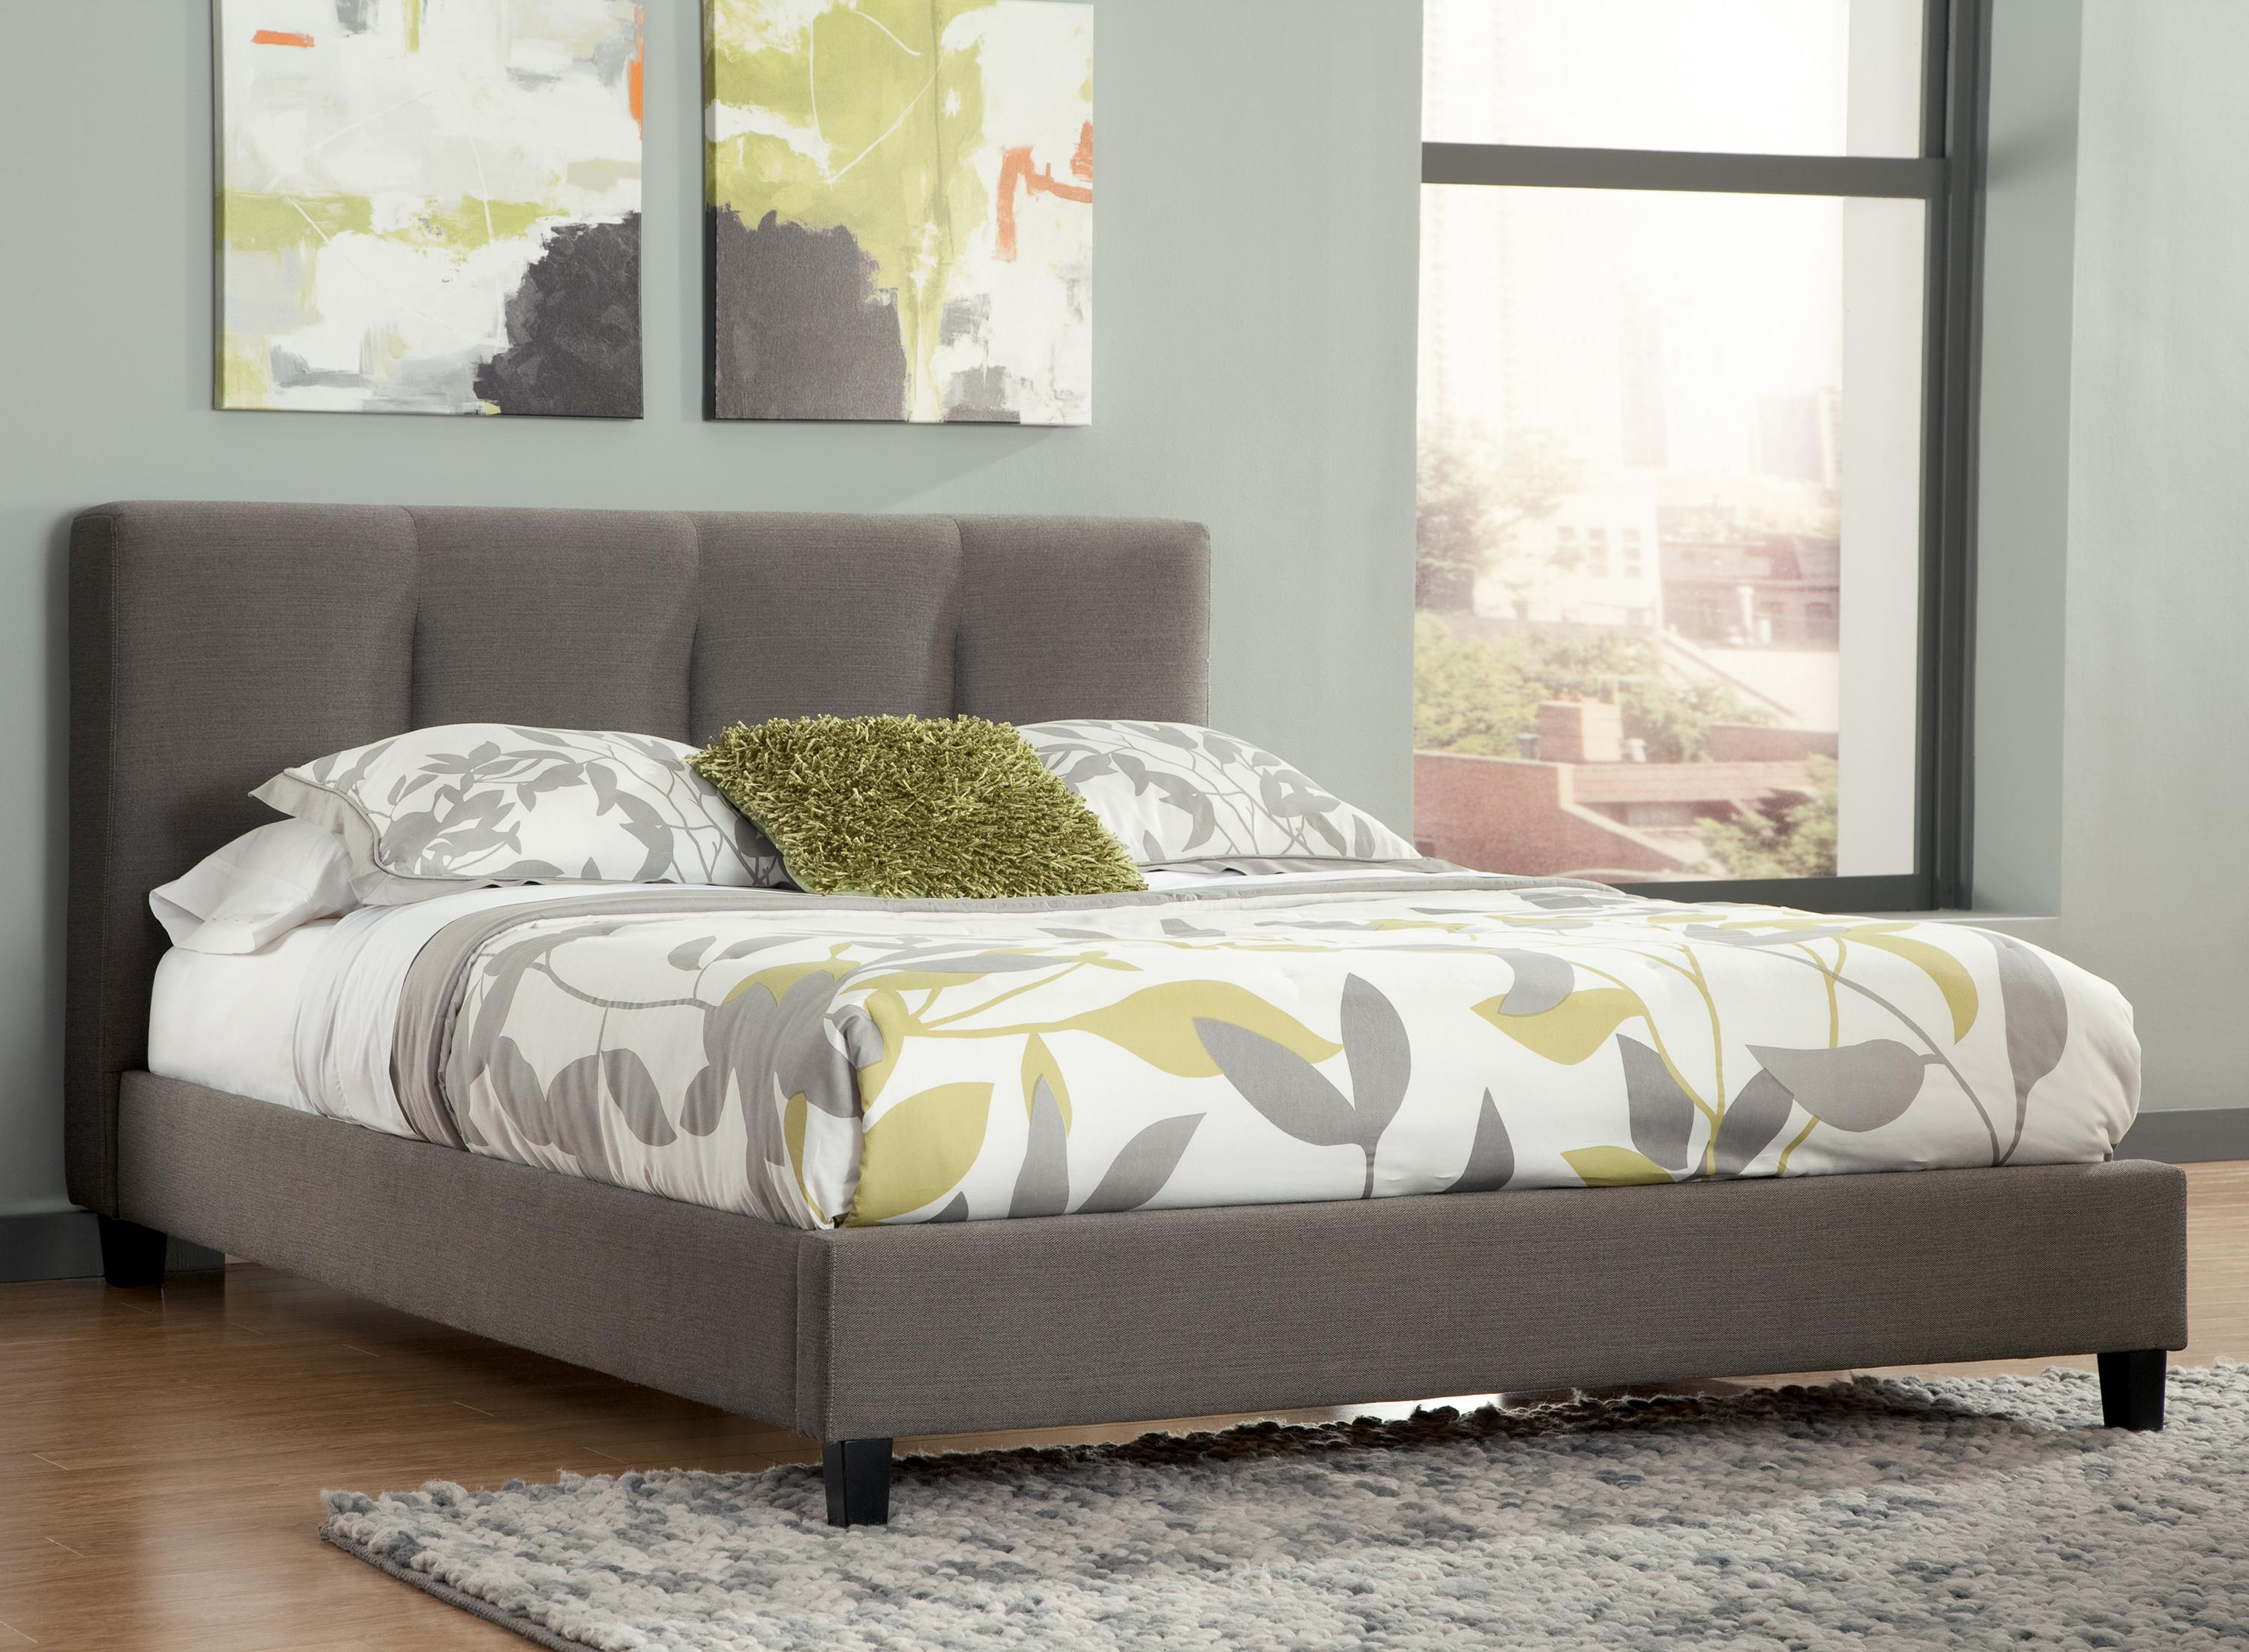 Signature Design By Ashley Masterton Queen Upholstered Platform Bed With Channel Tufted